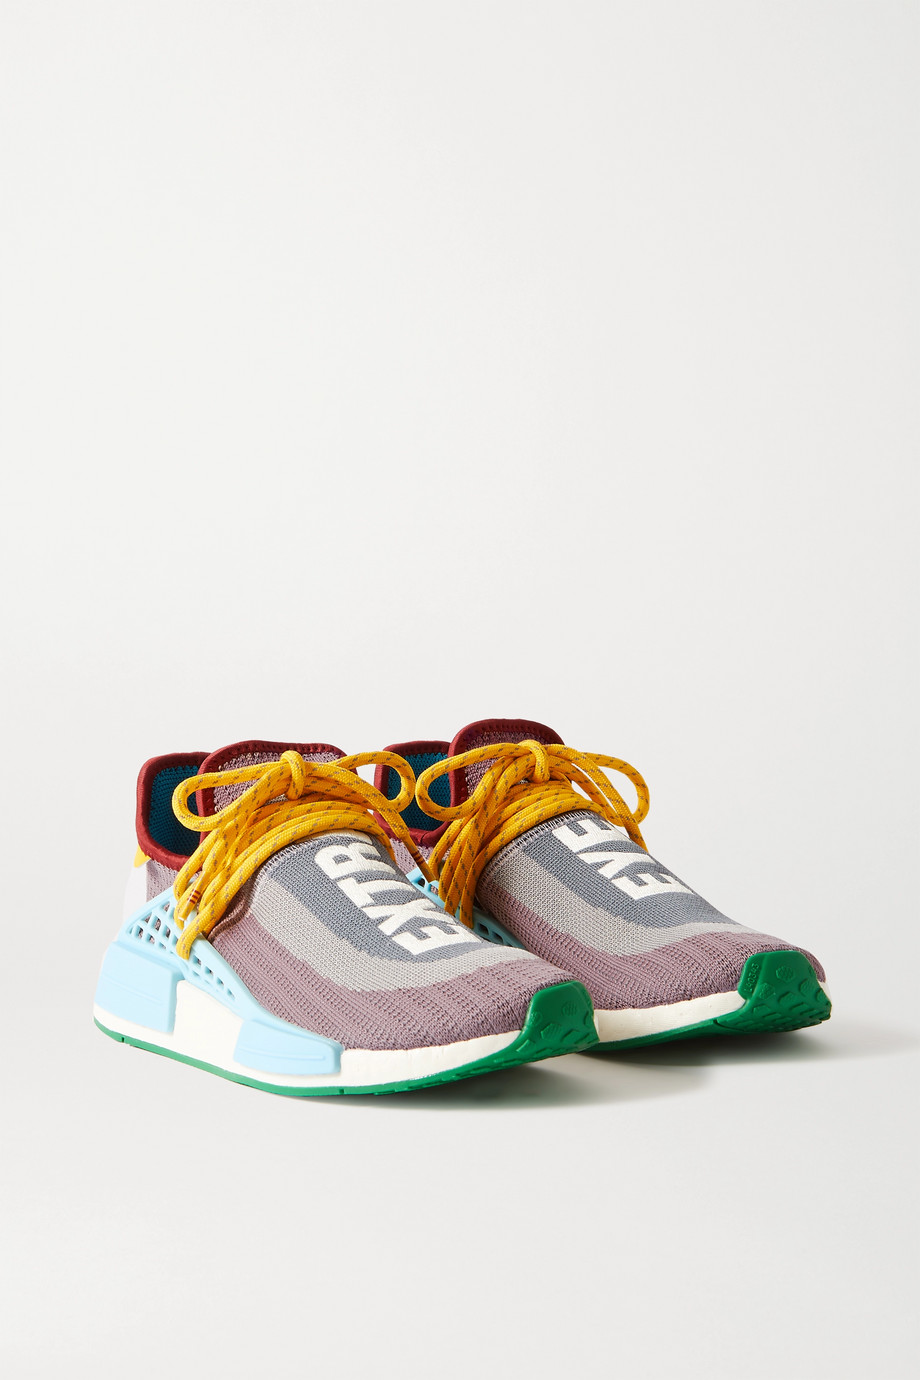 adidas Originals x Pharrell Williams NMD Hu 皮革橡胶边饰 Primeknit 编织面料运动鞋